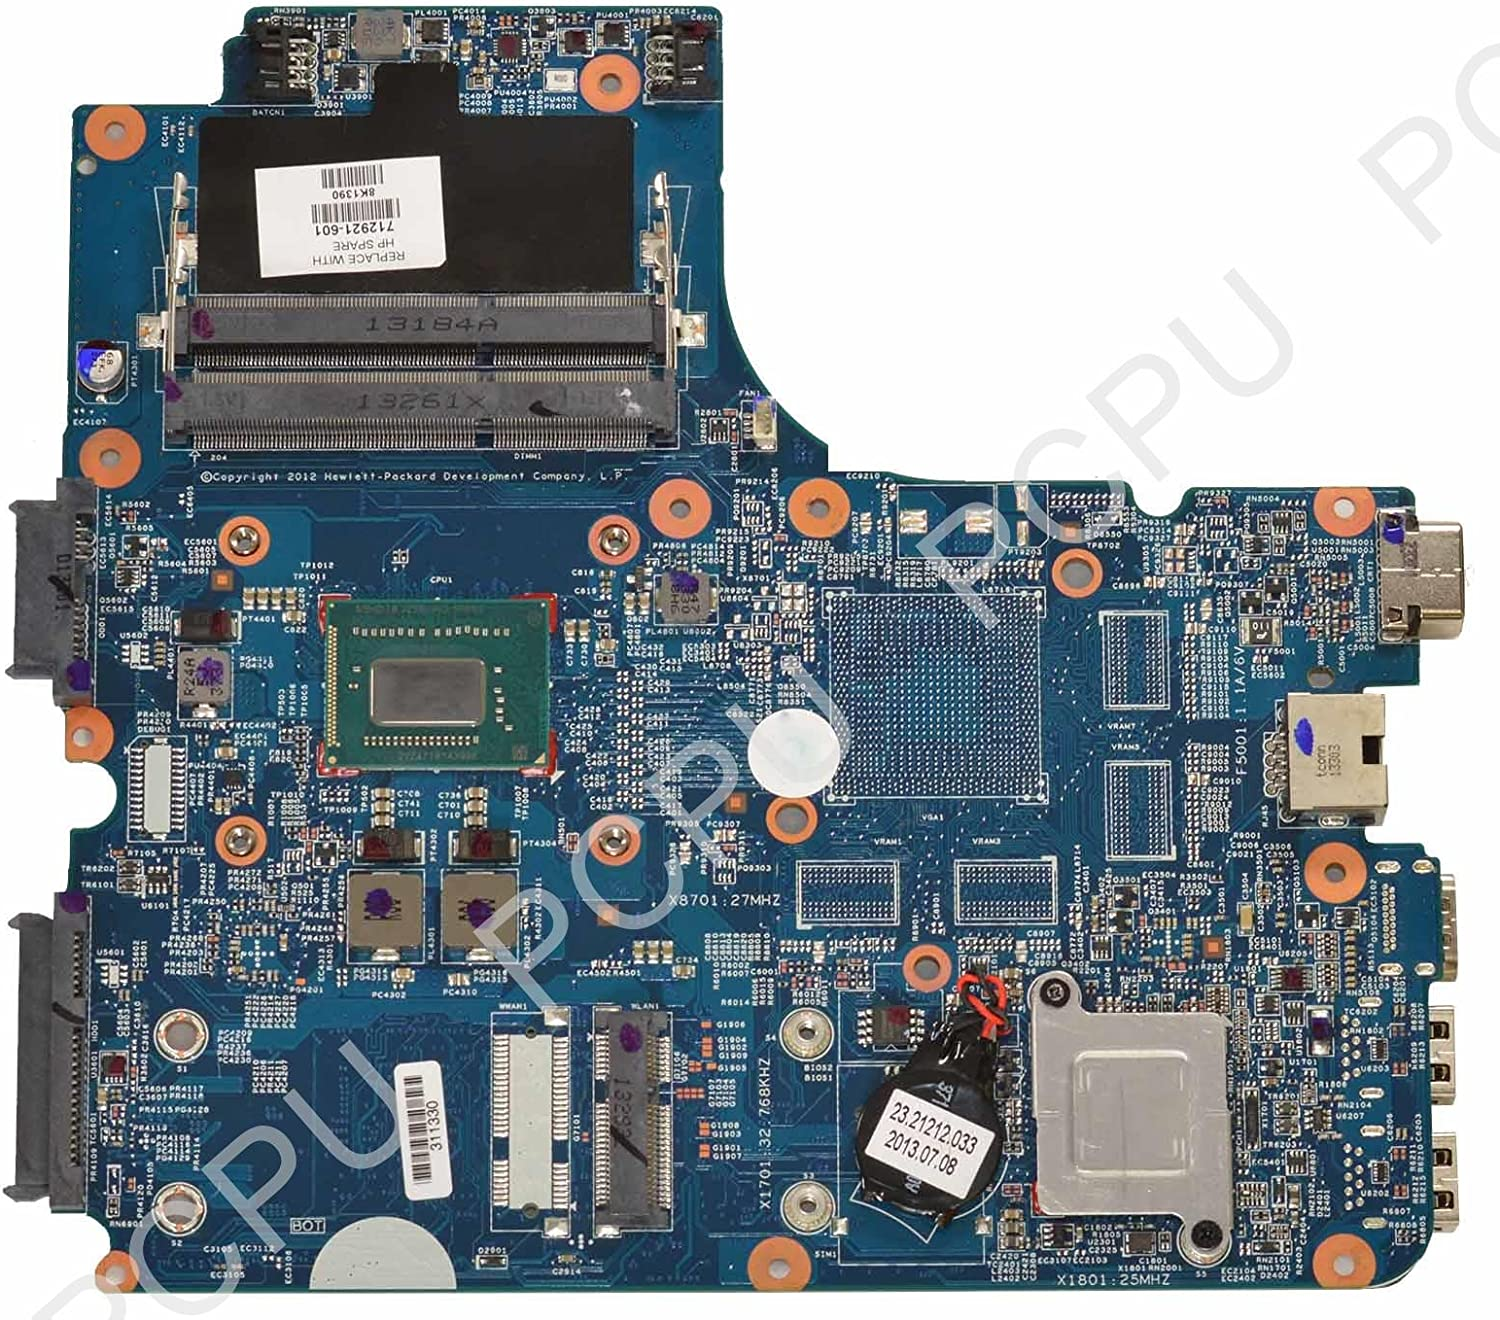 712921-601 HP 4440s 4540s Laptop Motherboard w/Intel i3-3110M 2.4Ghz CPU